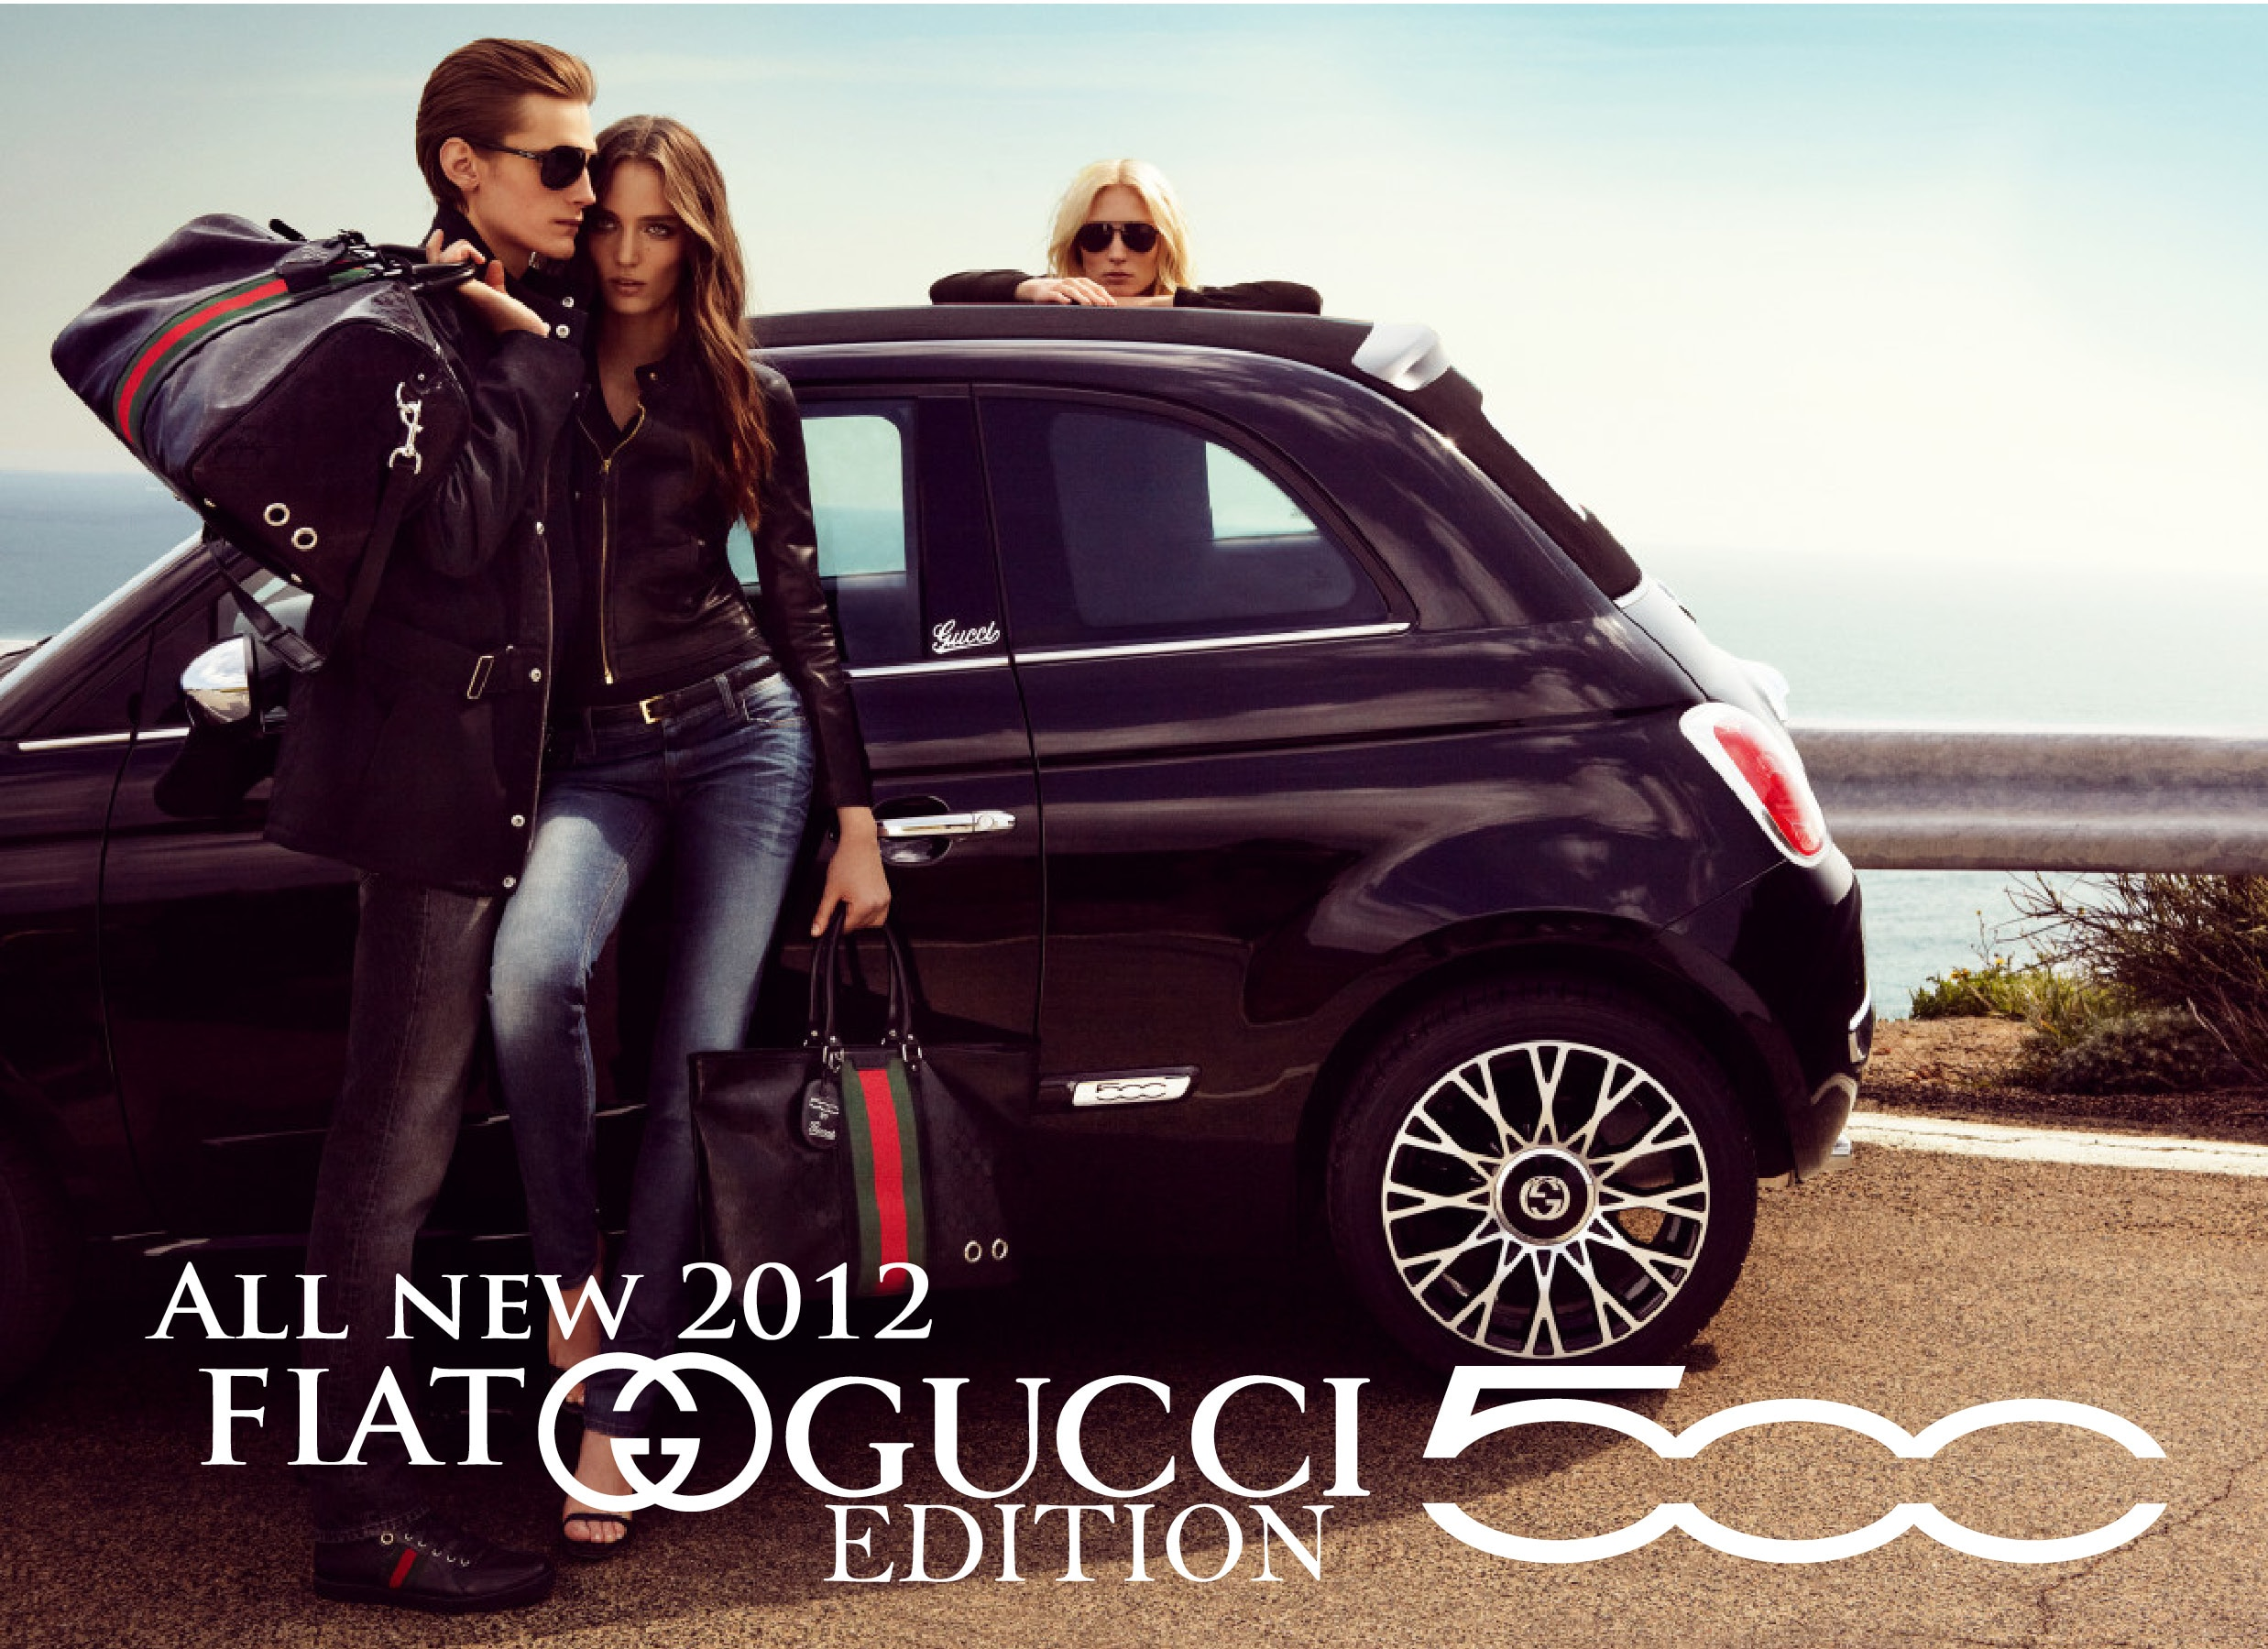 4e39692cd The FIAT 500 GUCCI Edition